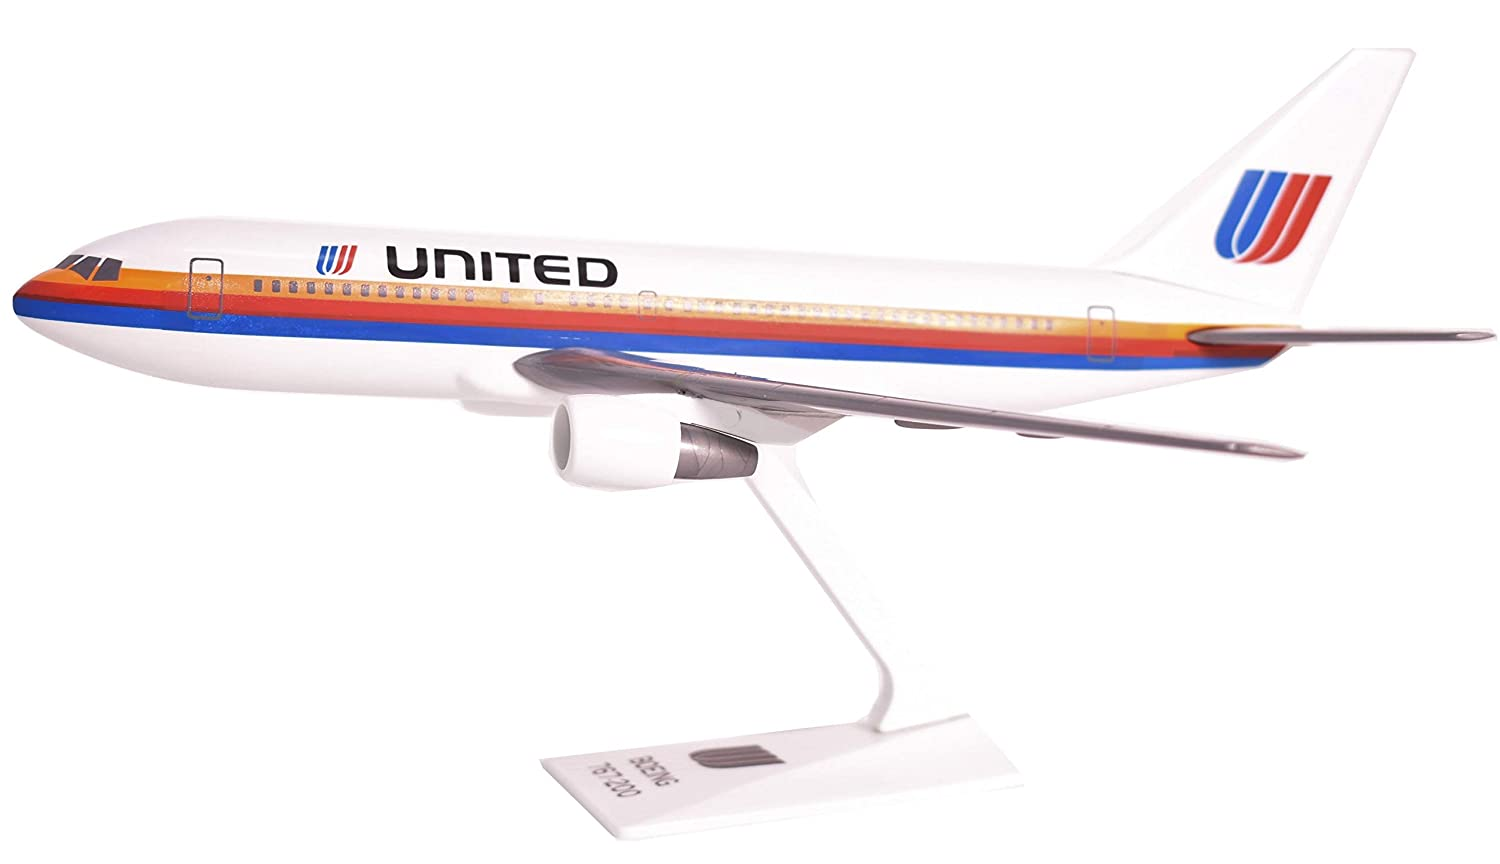 United 76-93 767-200 Airplane Miniature Model Plastic Snap-Fit 1:200 Part# ABO-76720H-002